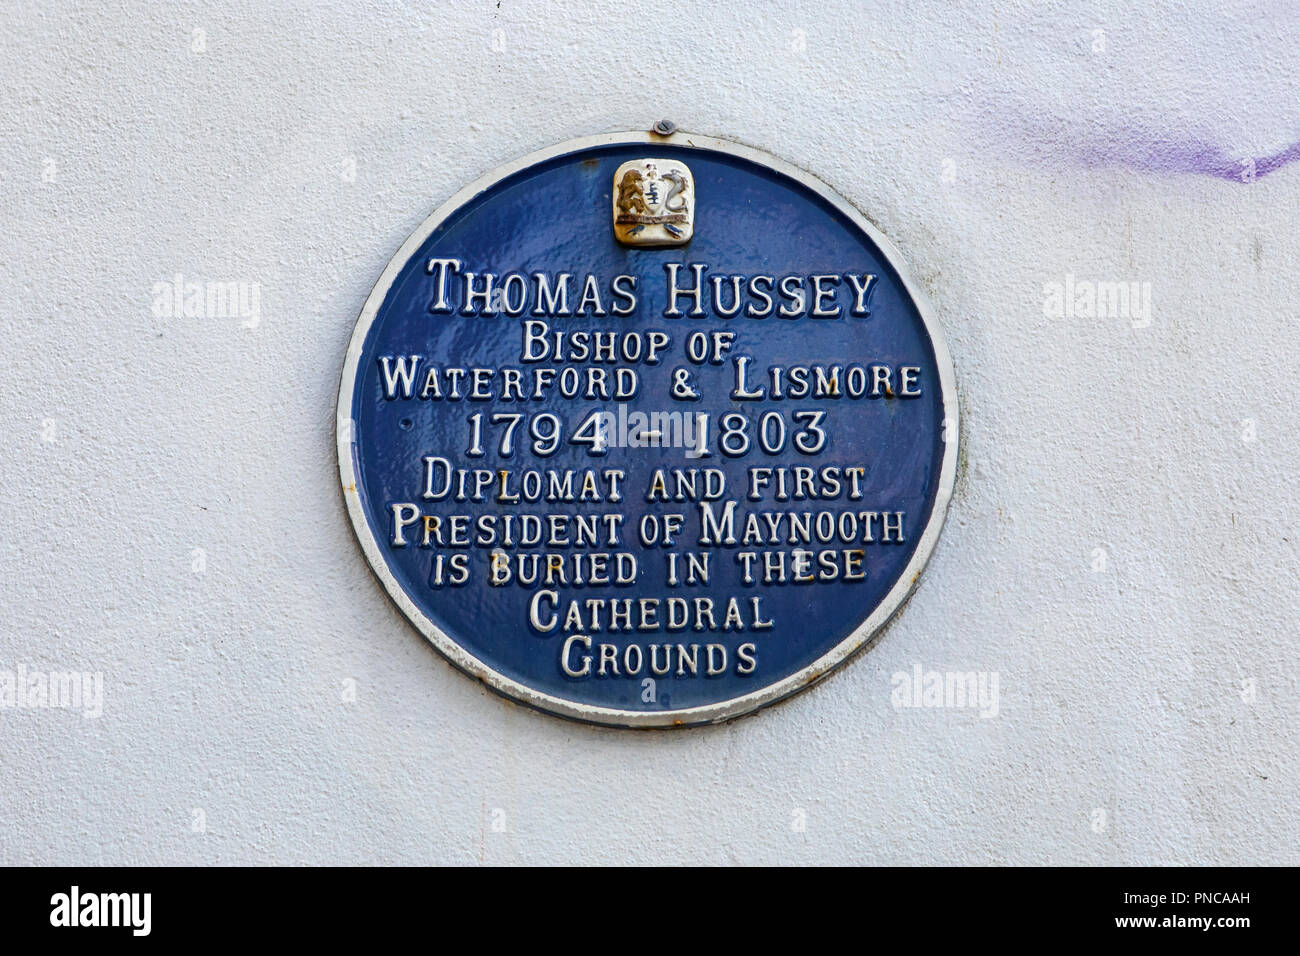 Waterford, Republic of Ireland - August 14th 2018: A plaque at the Cathedral of the Most Holy Trinity in the city of Waterford, marking the location w - Stock Image